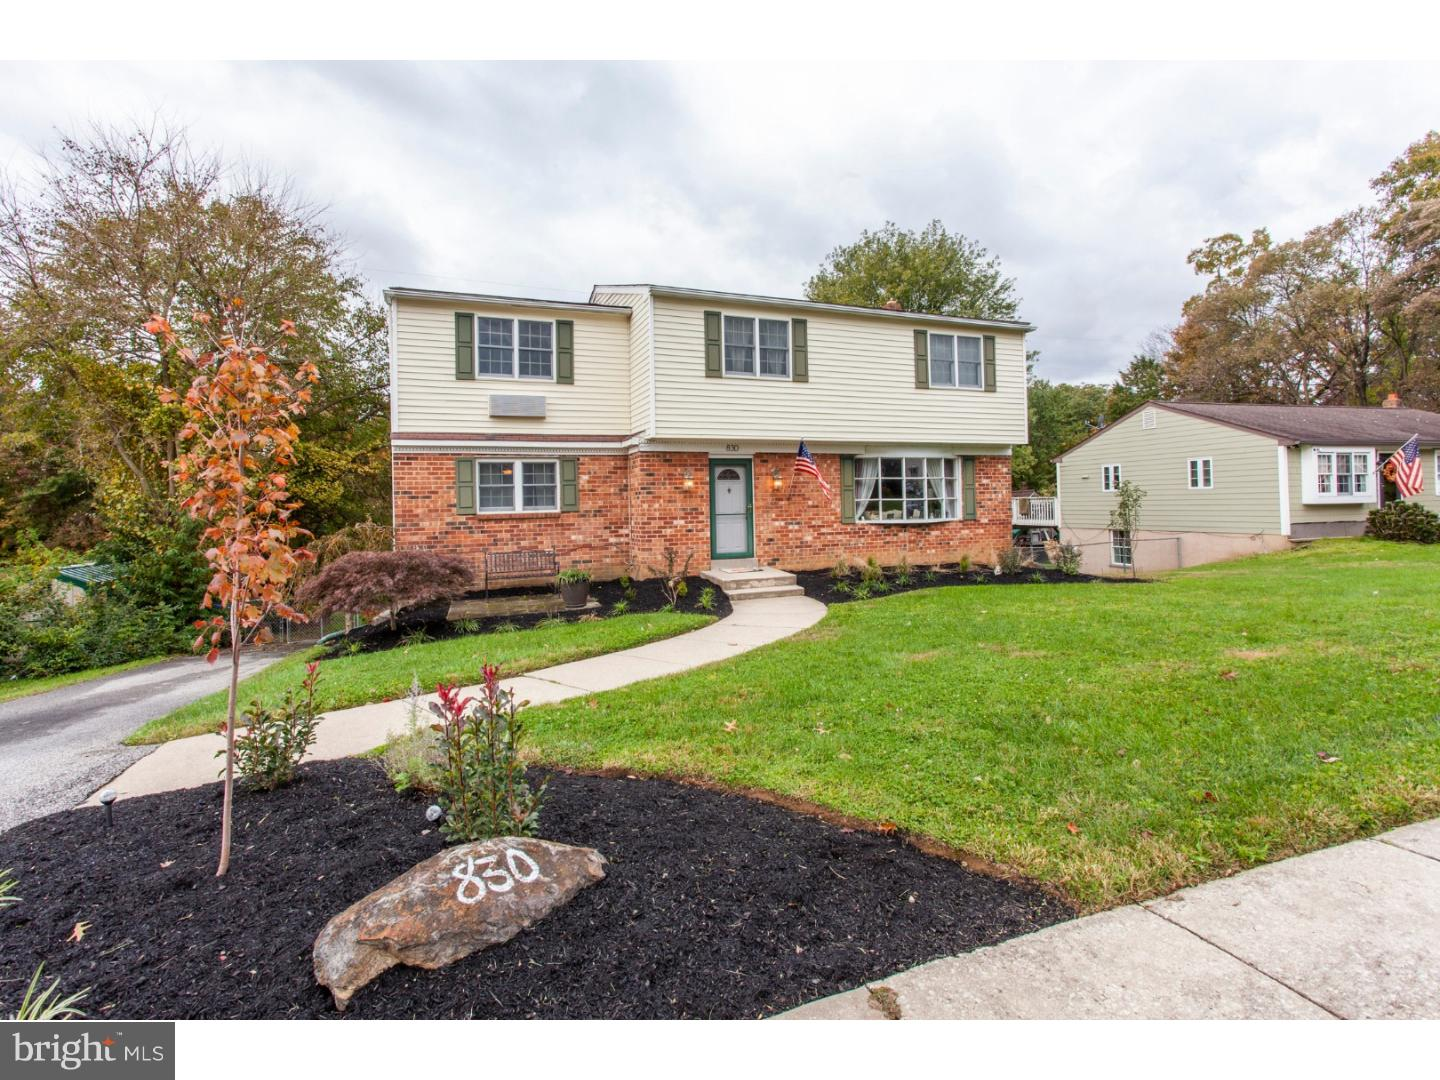 830 LITWA LANE, ASTON, PA 19014